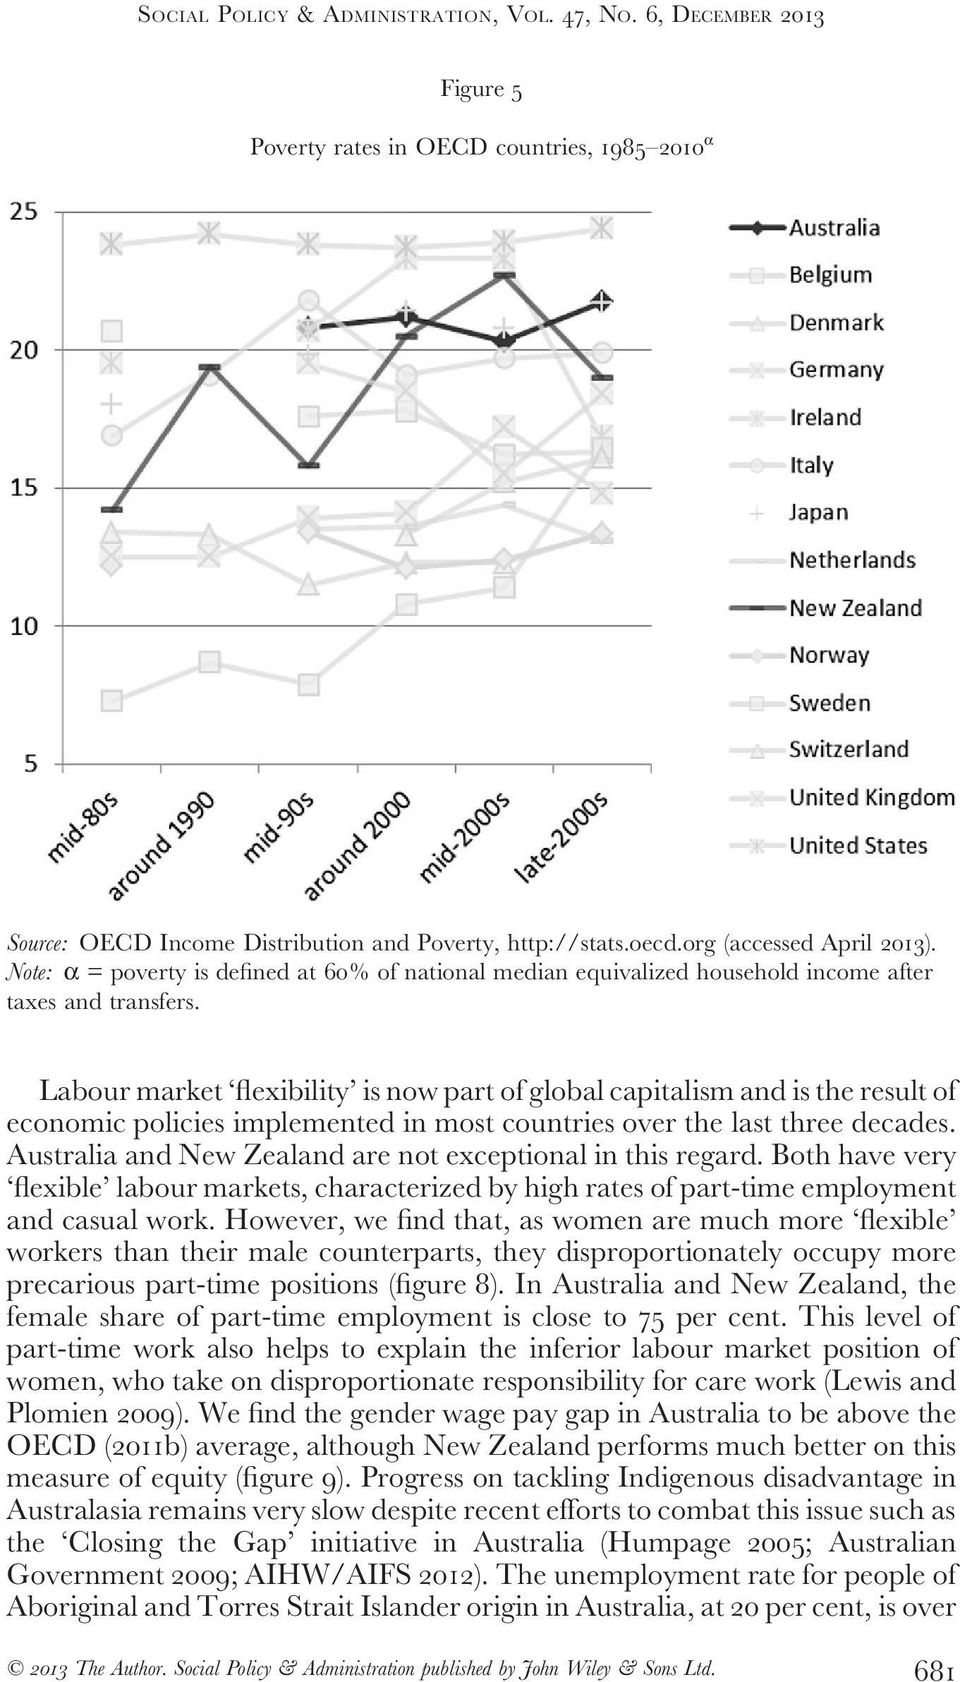 Labour market flexibility is now part of global capitalism and is the result of economic policies implemented in most countries over the last three decades.